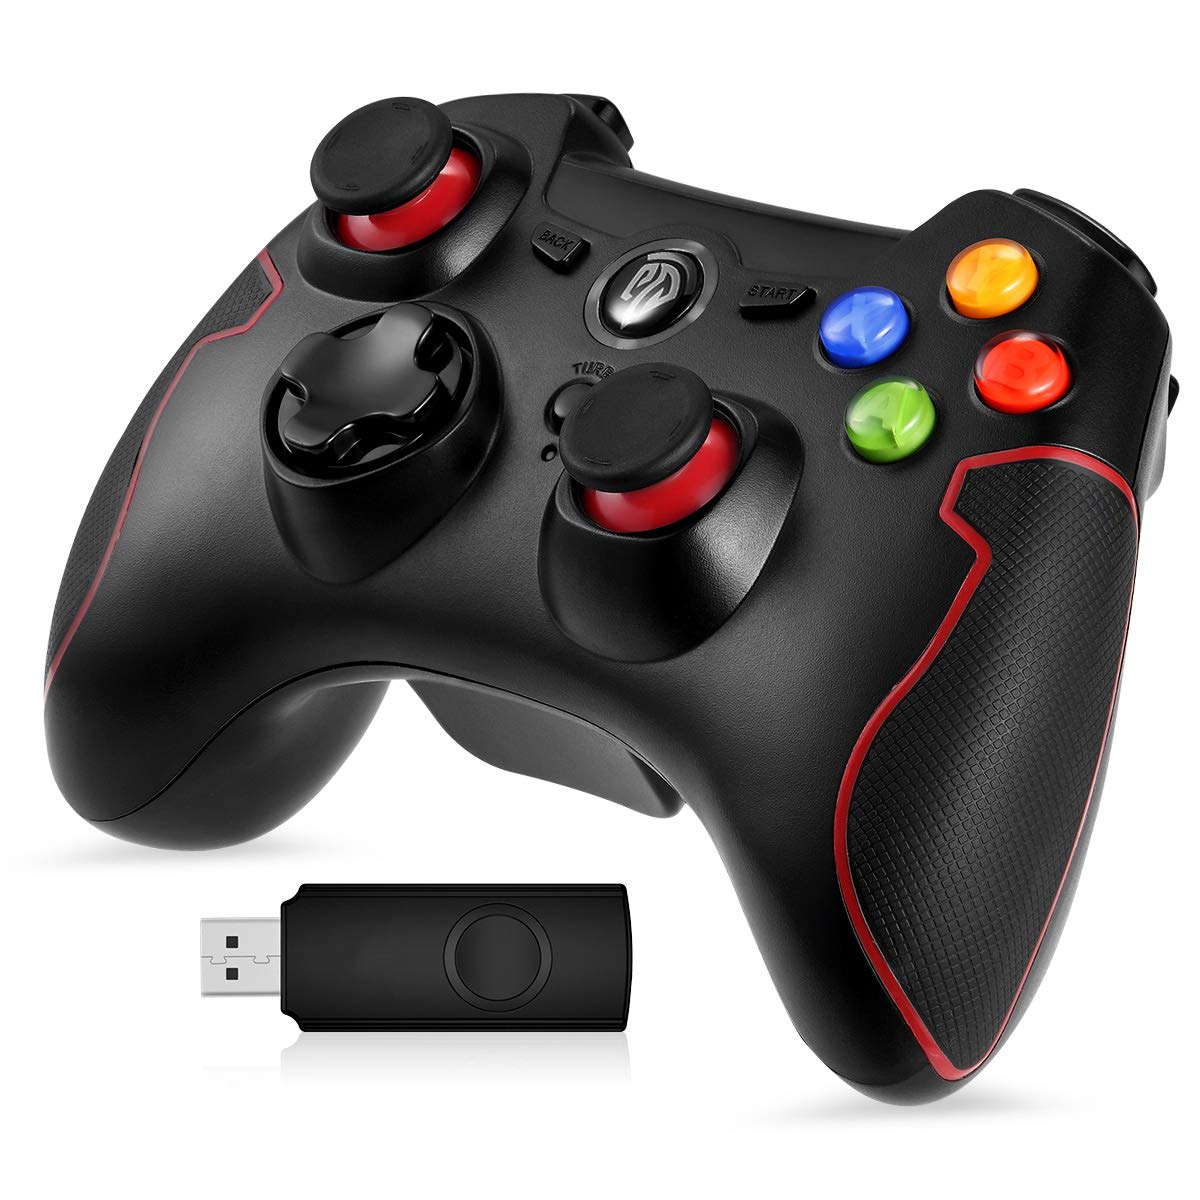 PS3 Dualshock Gaming Controller, EasySMX Wireless 2.4G Gamepads with Vibration Fire Button Range up to 10m Support PC